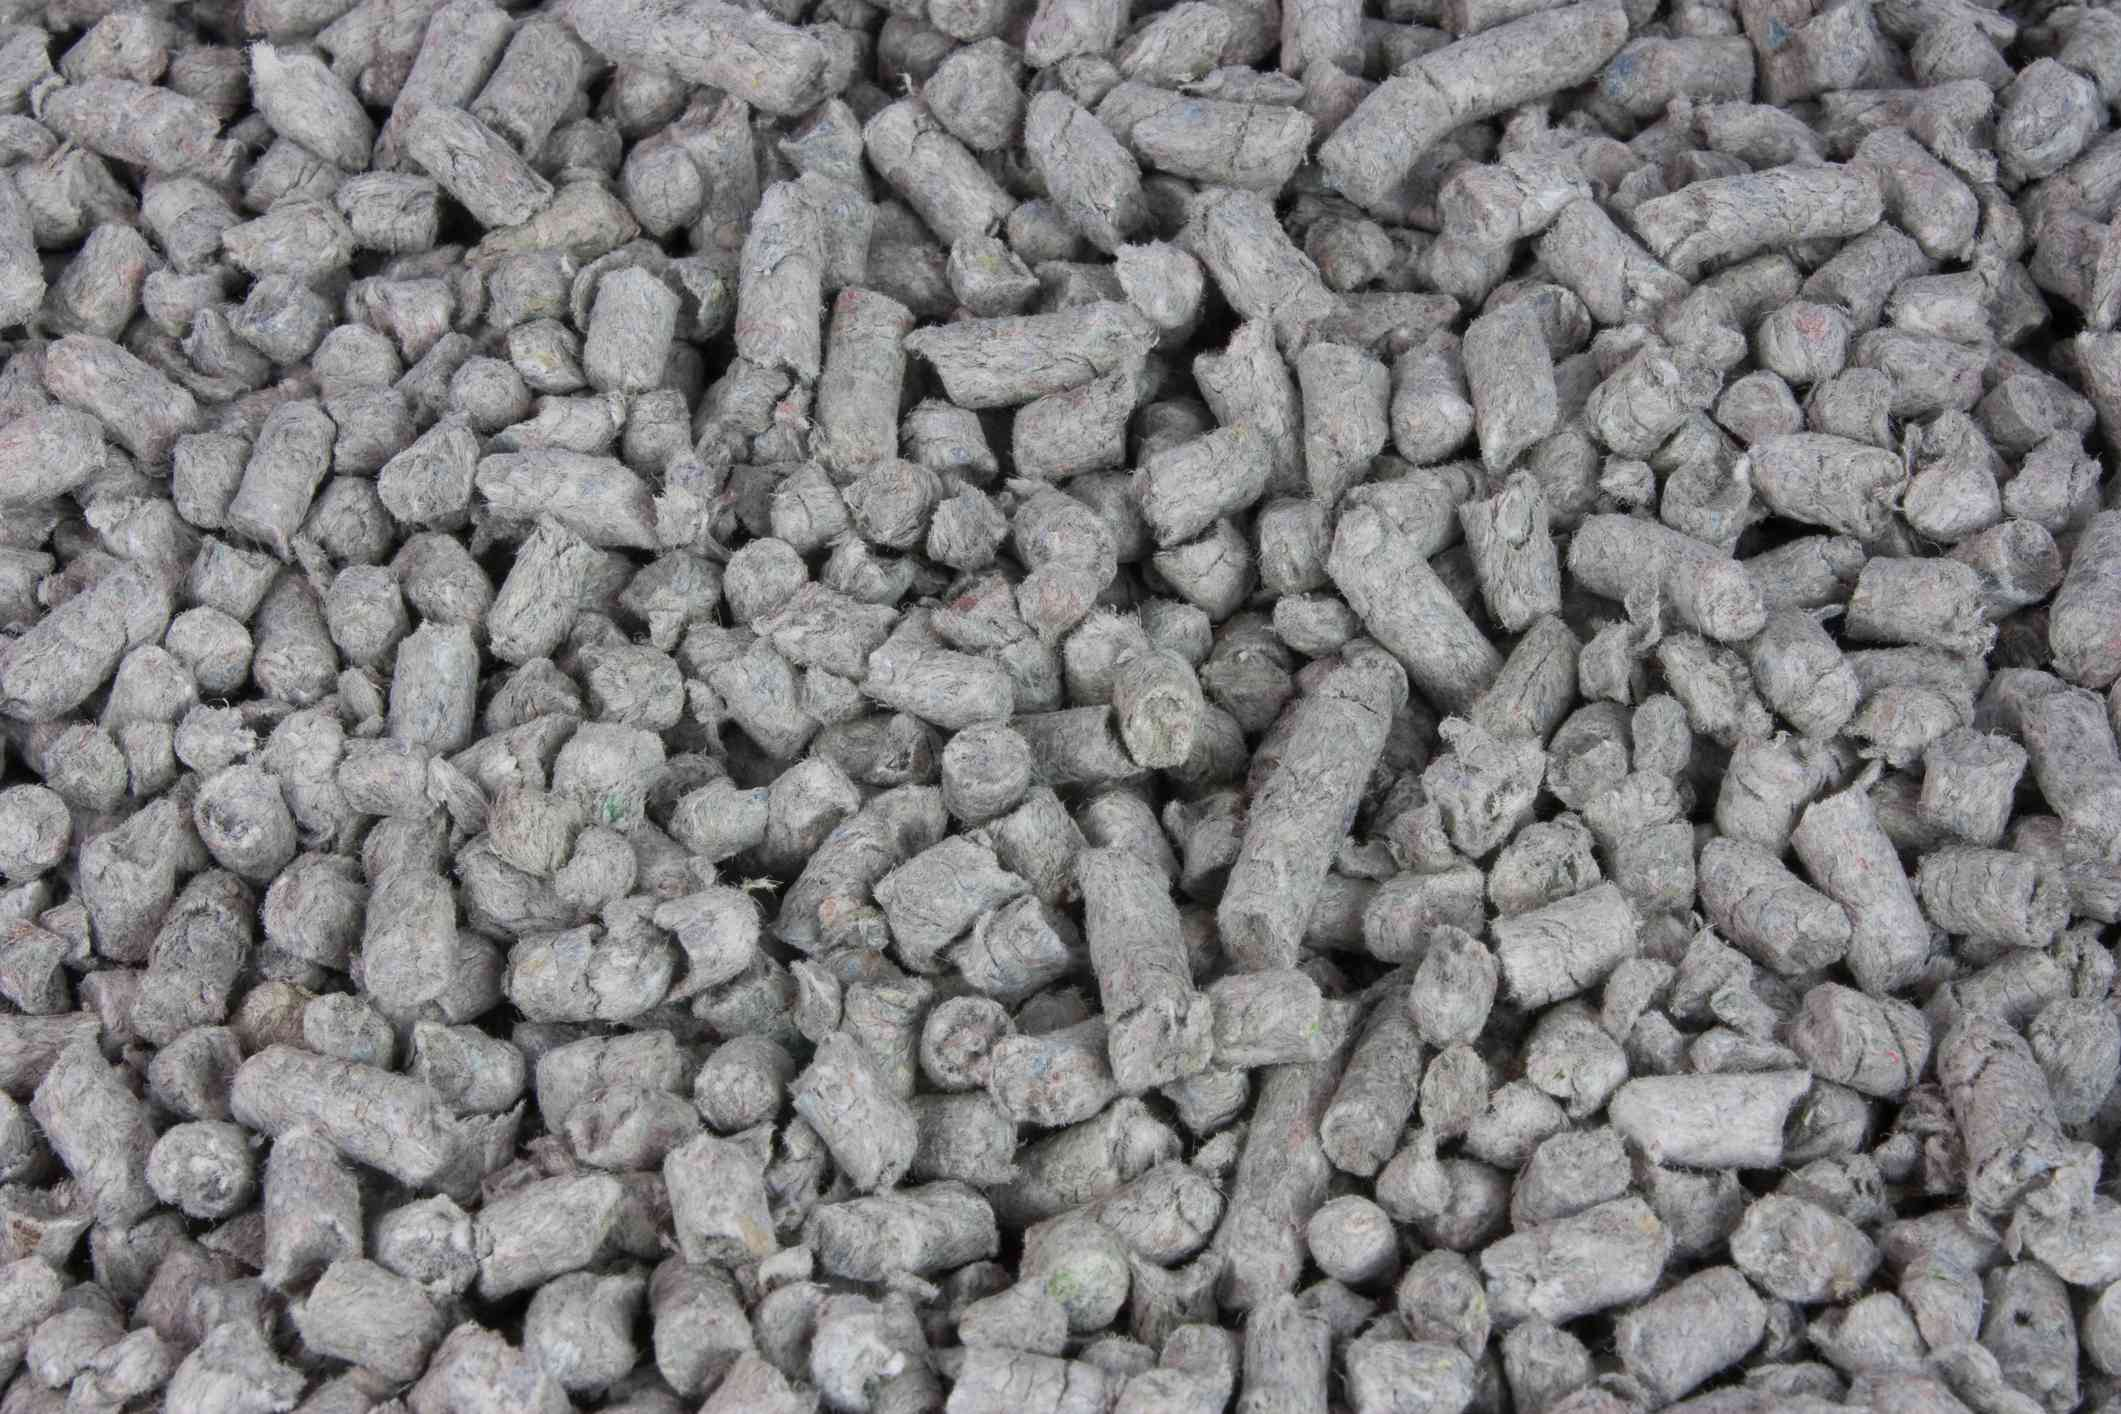 Paper-based cat litter close-up